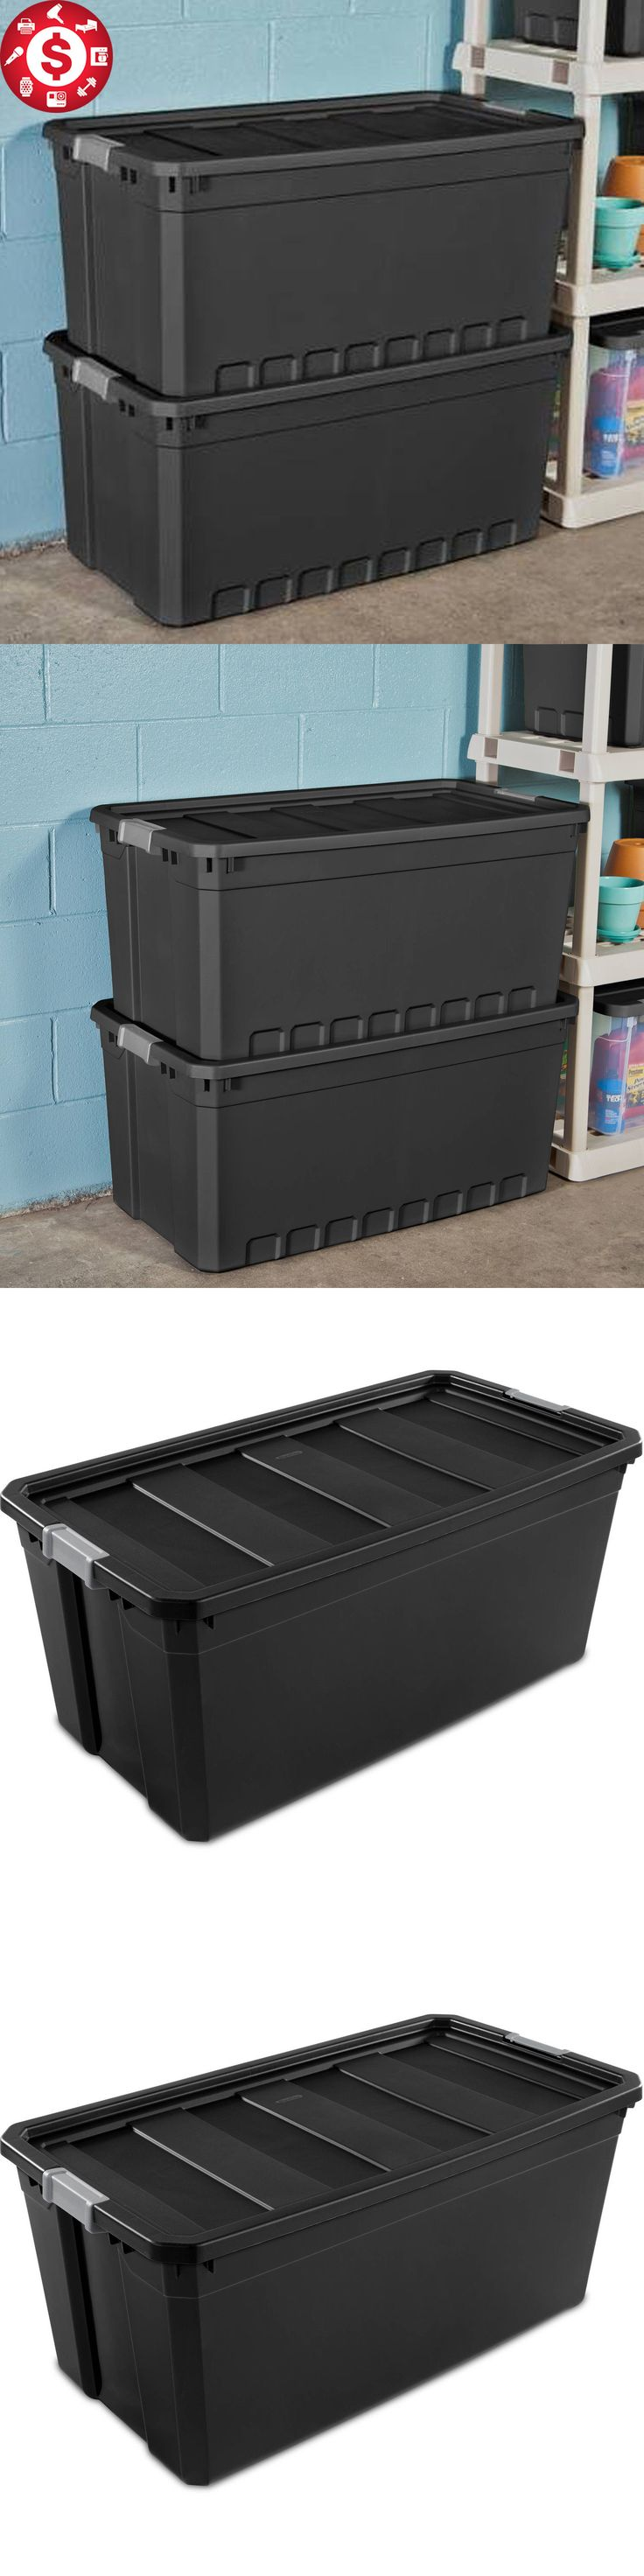 Storage Boxes 159897: 3 Plastic Storage Containers Extra Large Box Stacker Tote Bin W Lids 50 Gallon -> BUY IT NOW ONLY: $67.56 on eBay!